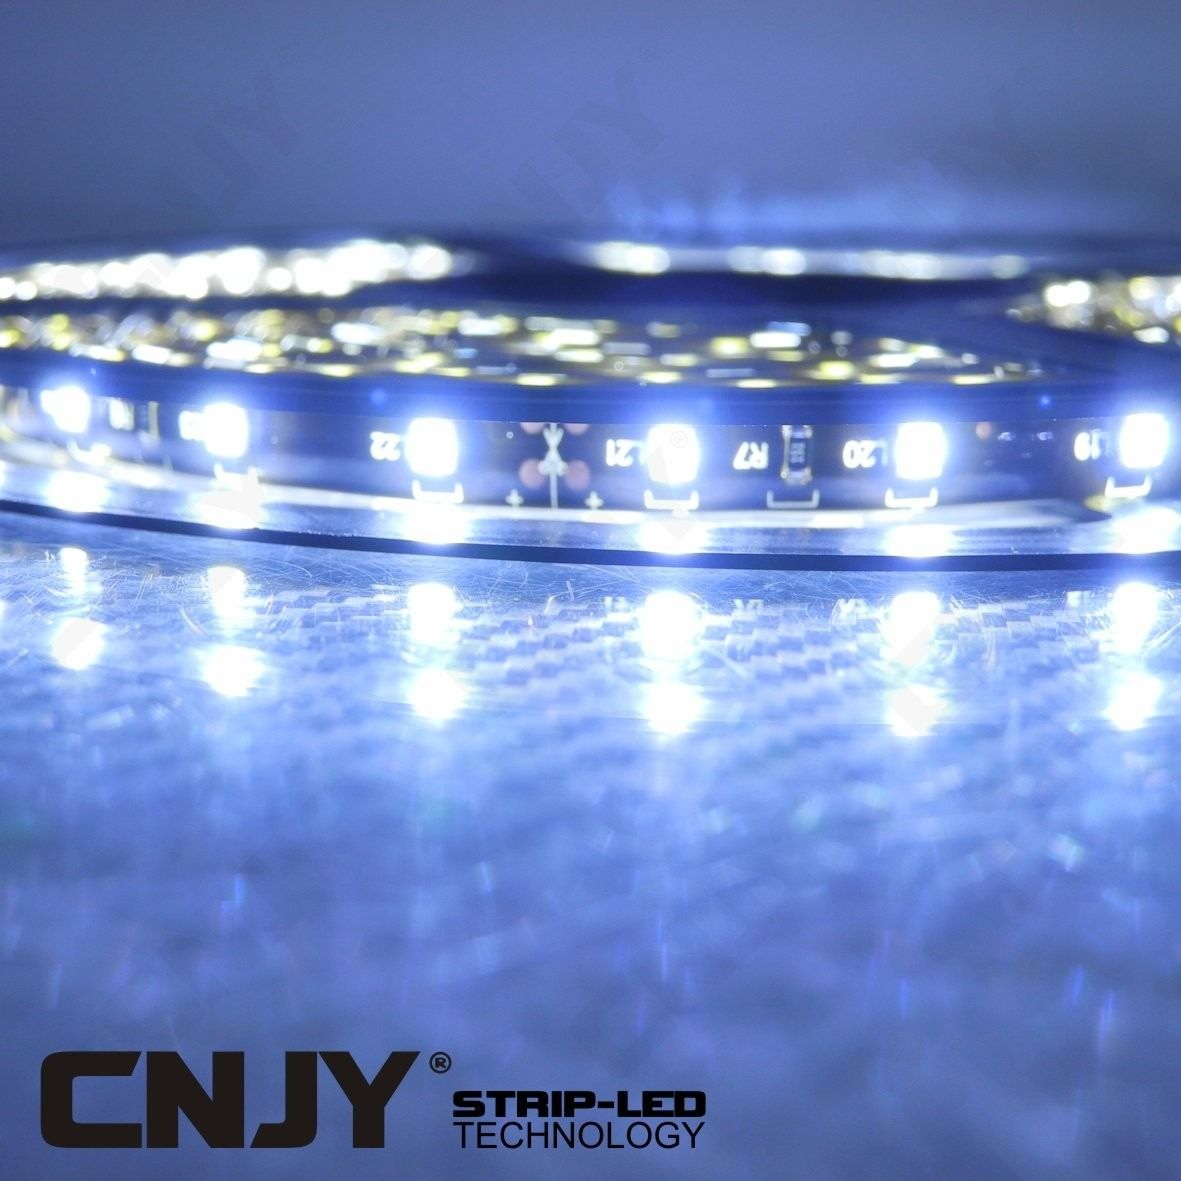 BANDE,LED,FLEXIBLE,STRIP,RUBAN,ROULEAU, DECORATION,12V,BAR,LED,DEL,SMD,ETANCHE,AQUARIUM,TUNING,blanc,froid